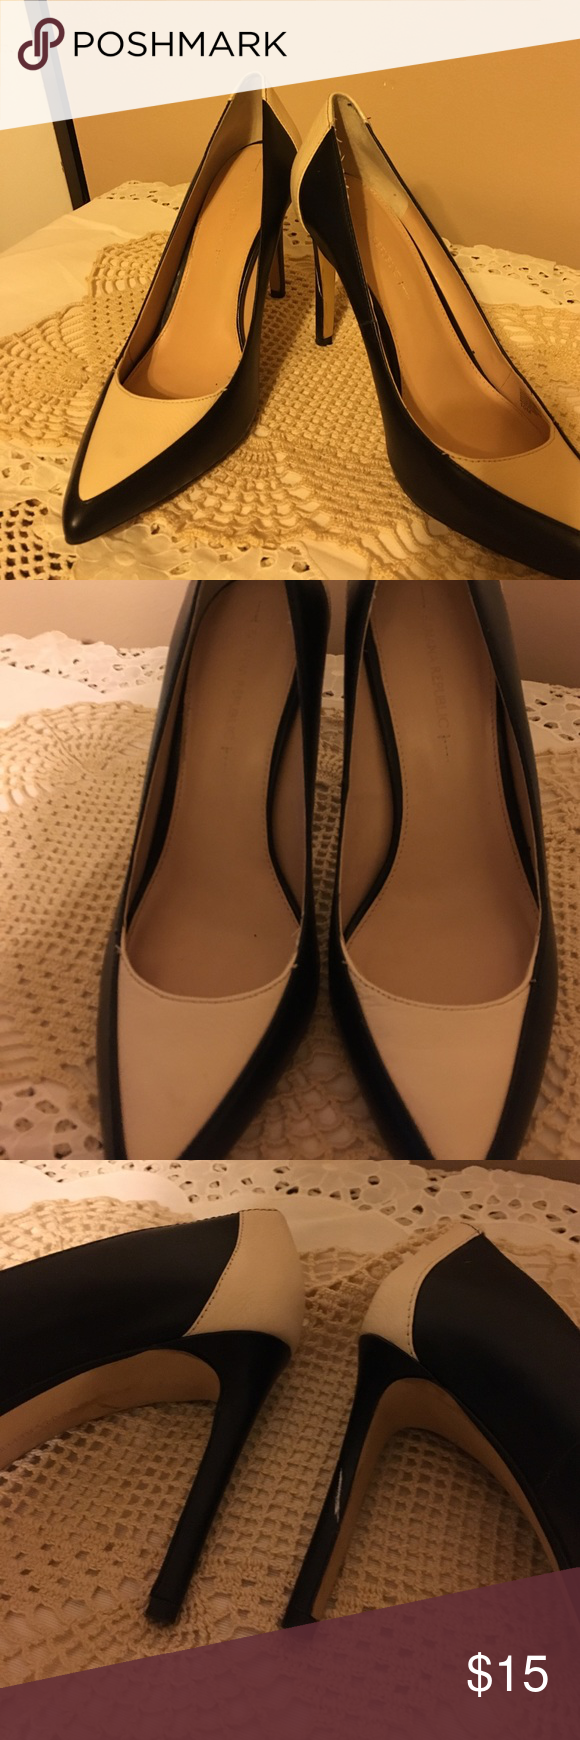 Blk and cream leather shoes Lightly used Banana Republic heels. Black and ivory leather .  Lightly used mark on one heel see pic Banana Republic Shoes Heels